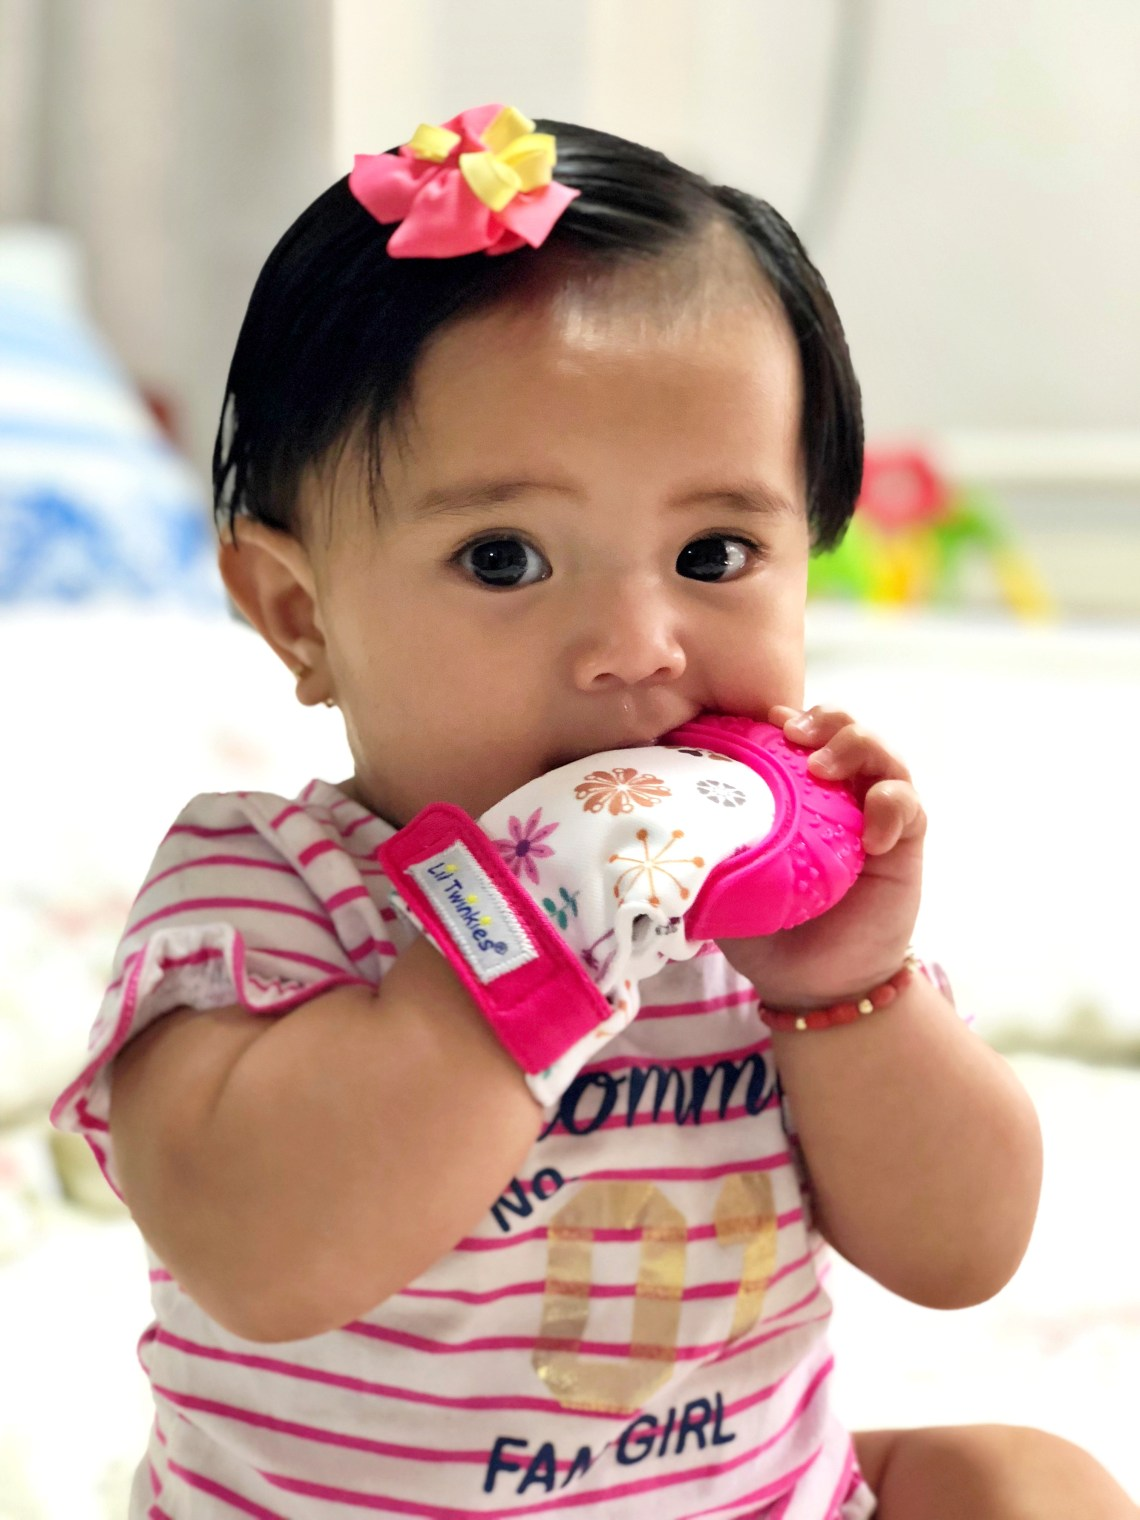 dyosathemomma: Li'l Twinkies review, mommy blogger ph, chewy mitten